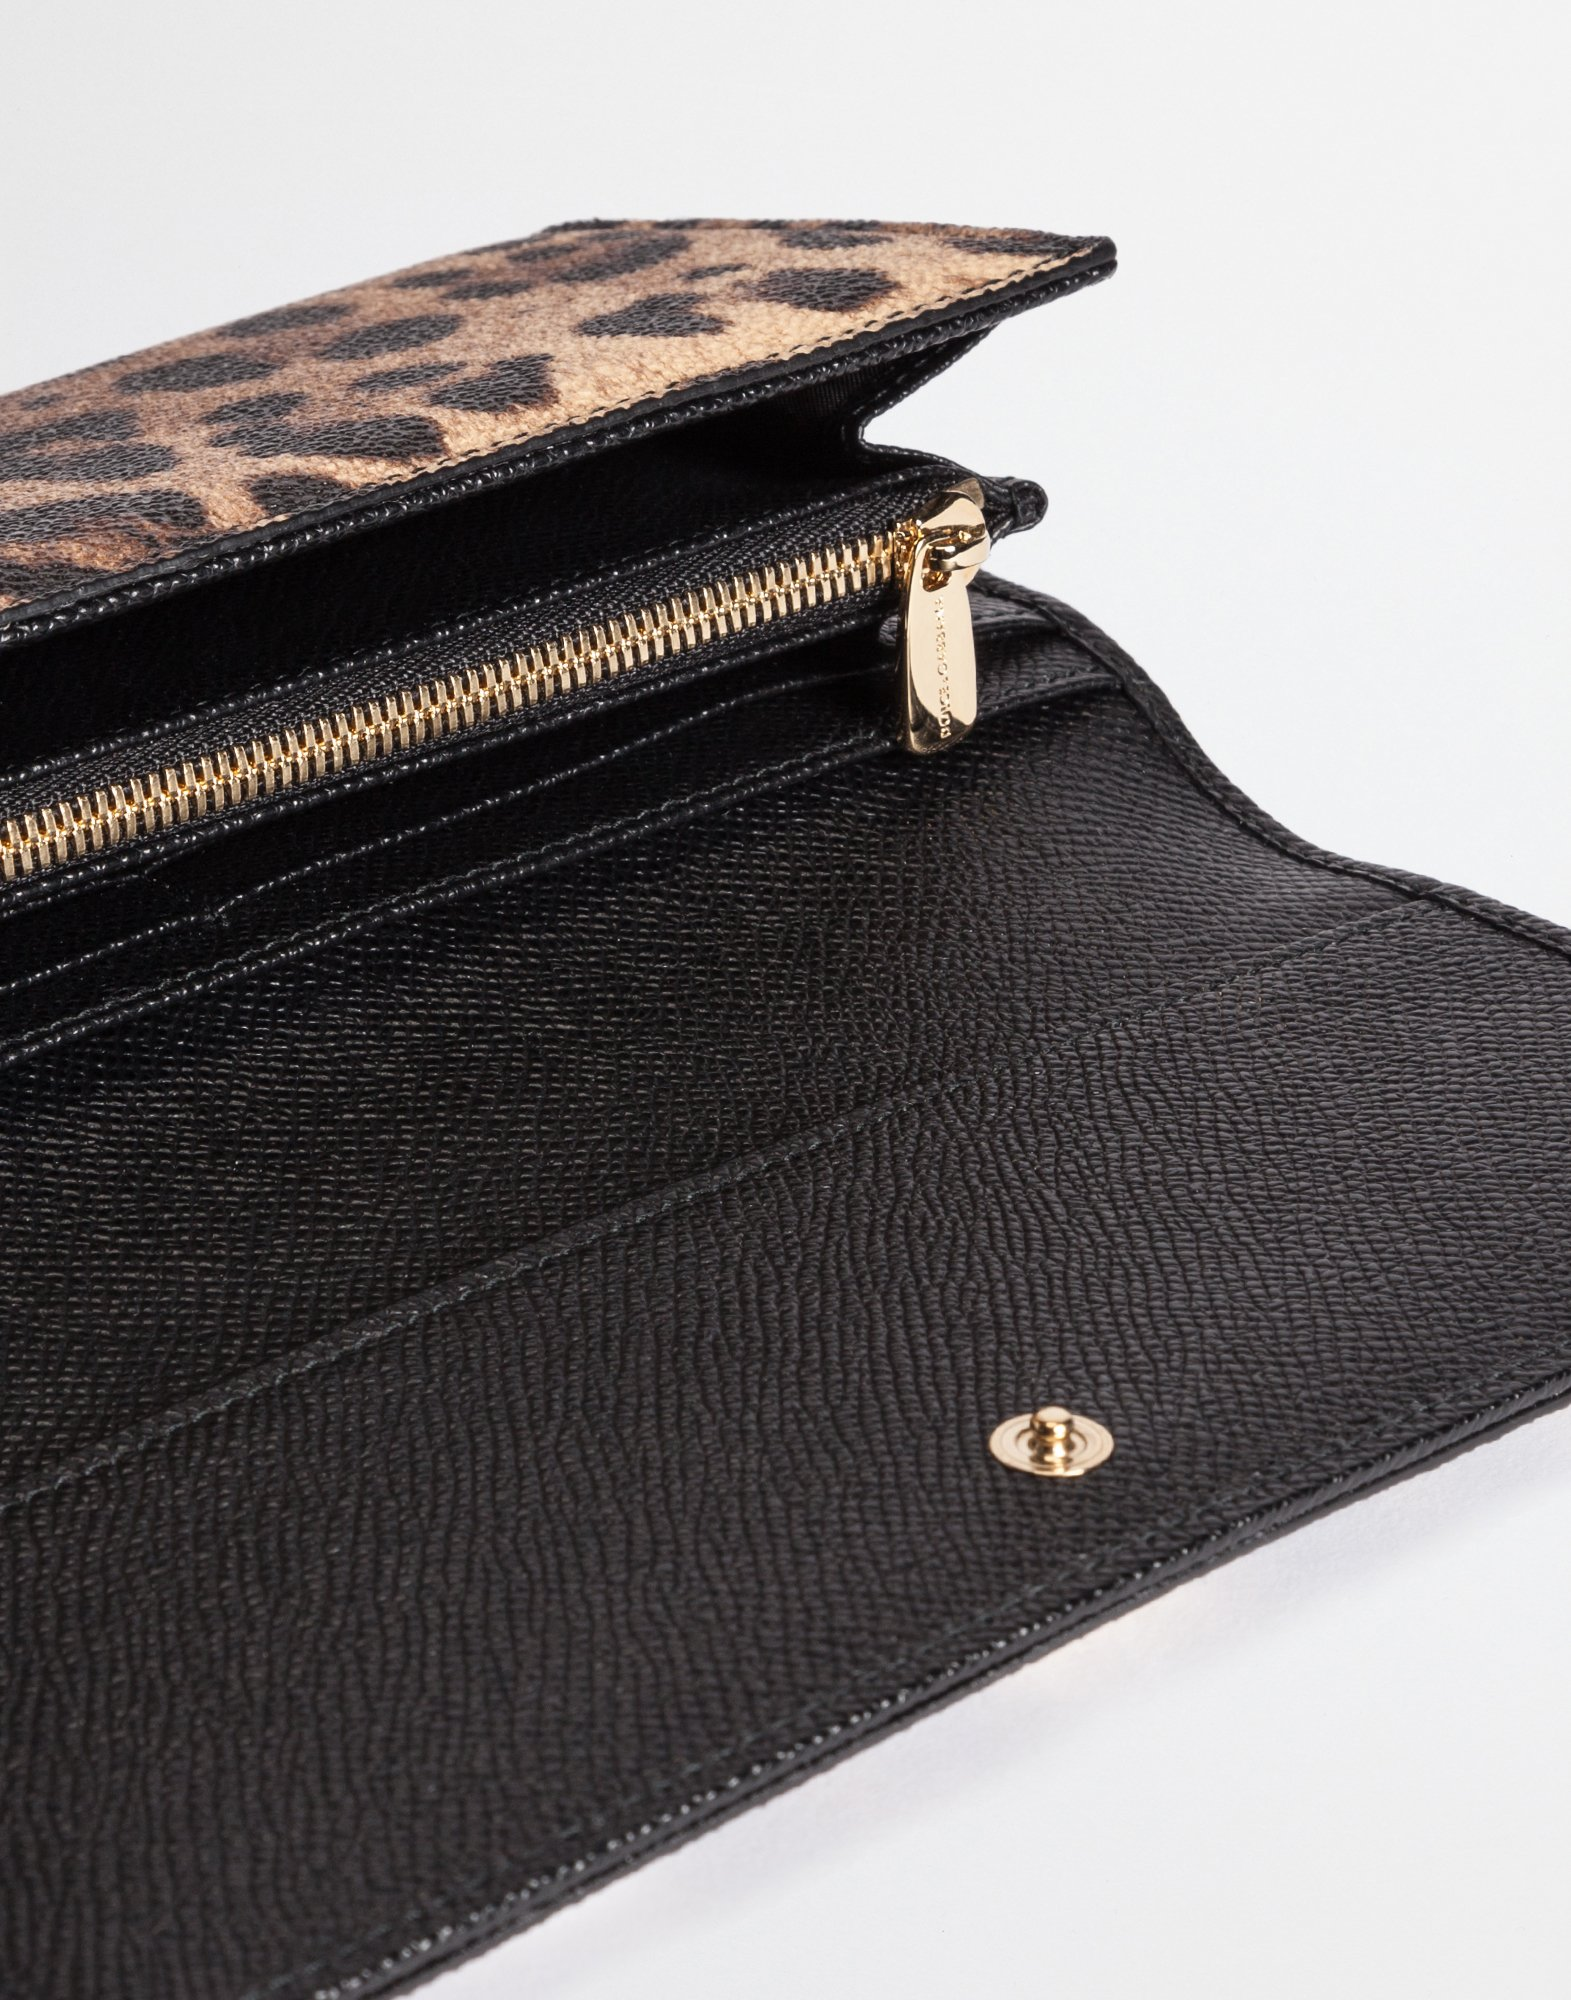 Dolce&Gabbana CONTINENTAL WALLET IN LEOPARD TEXTURED LEATHER